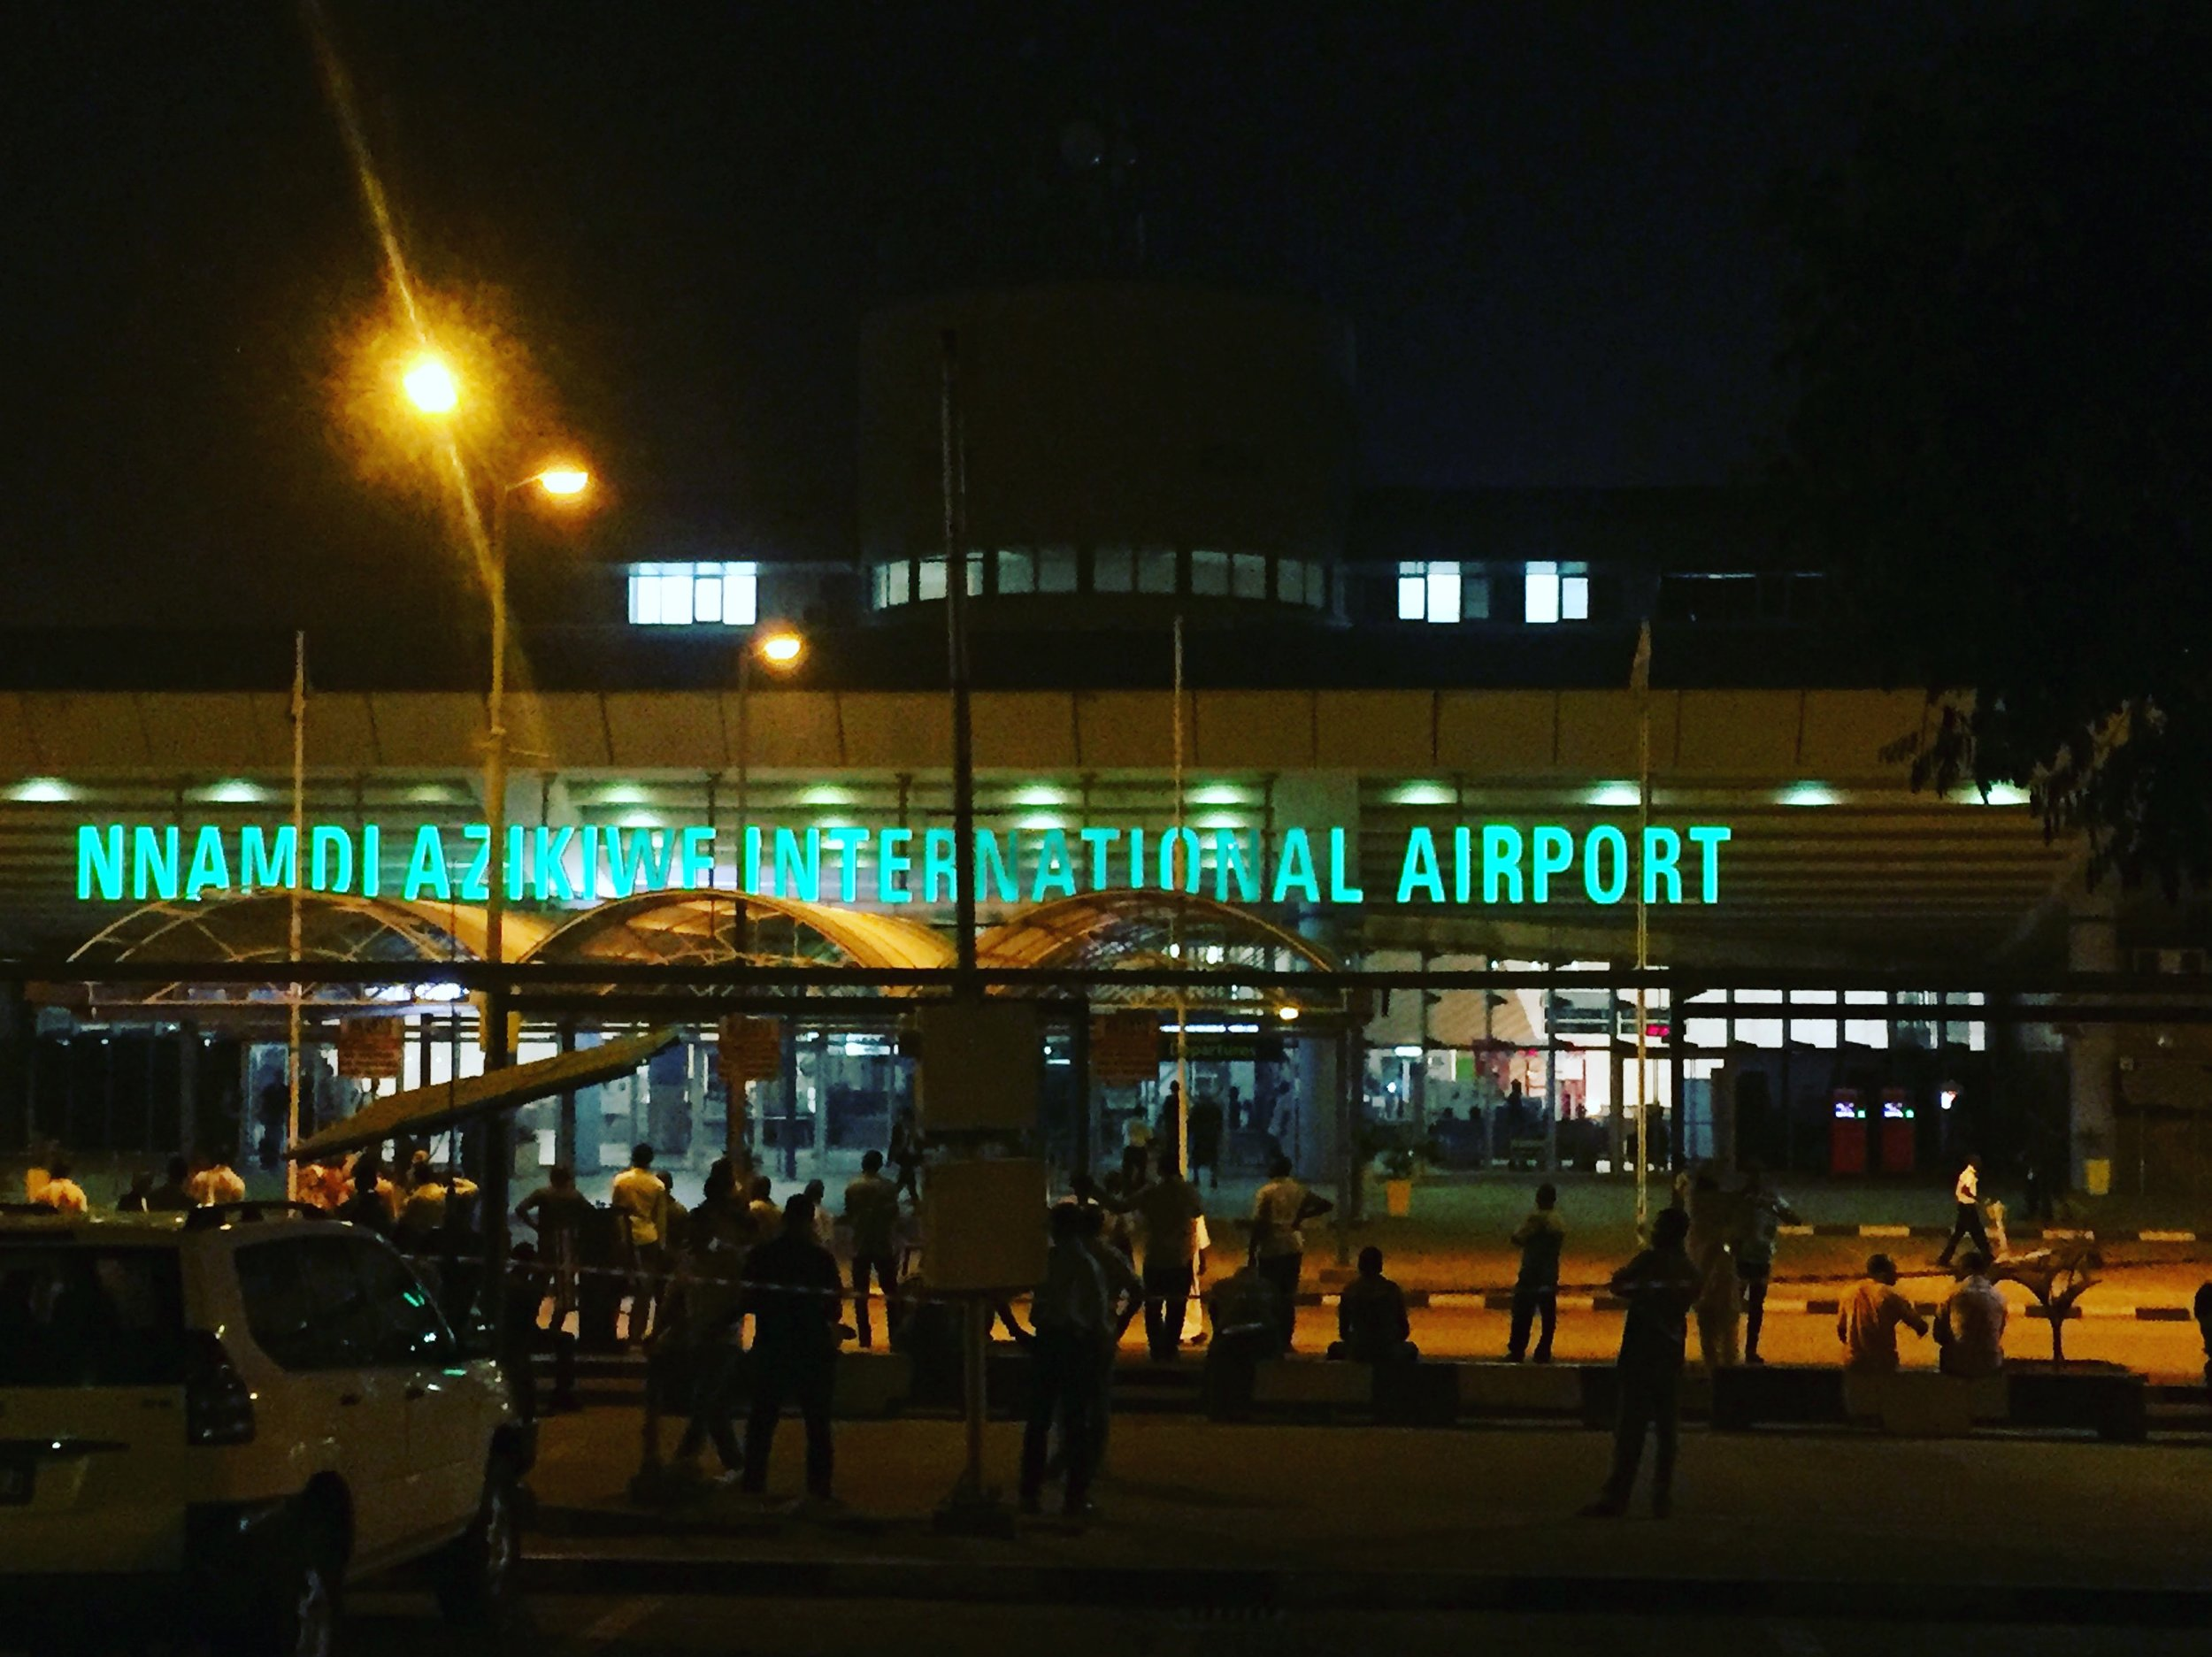 THE AIRPORT AT NIGHT